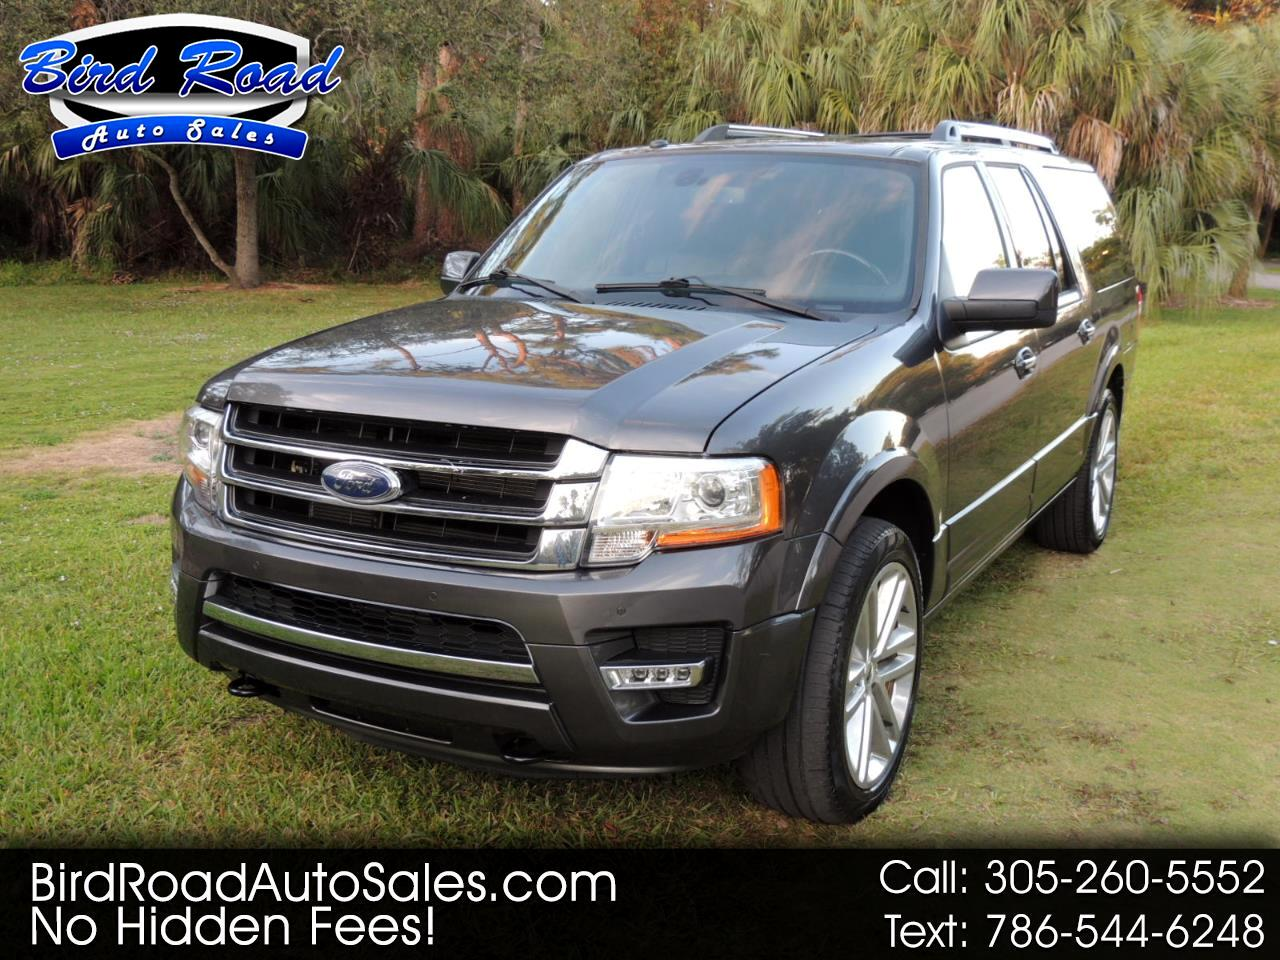 Ford Expedition EL Limited 4x4 2017